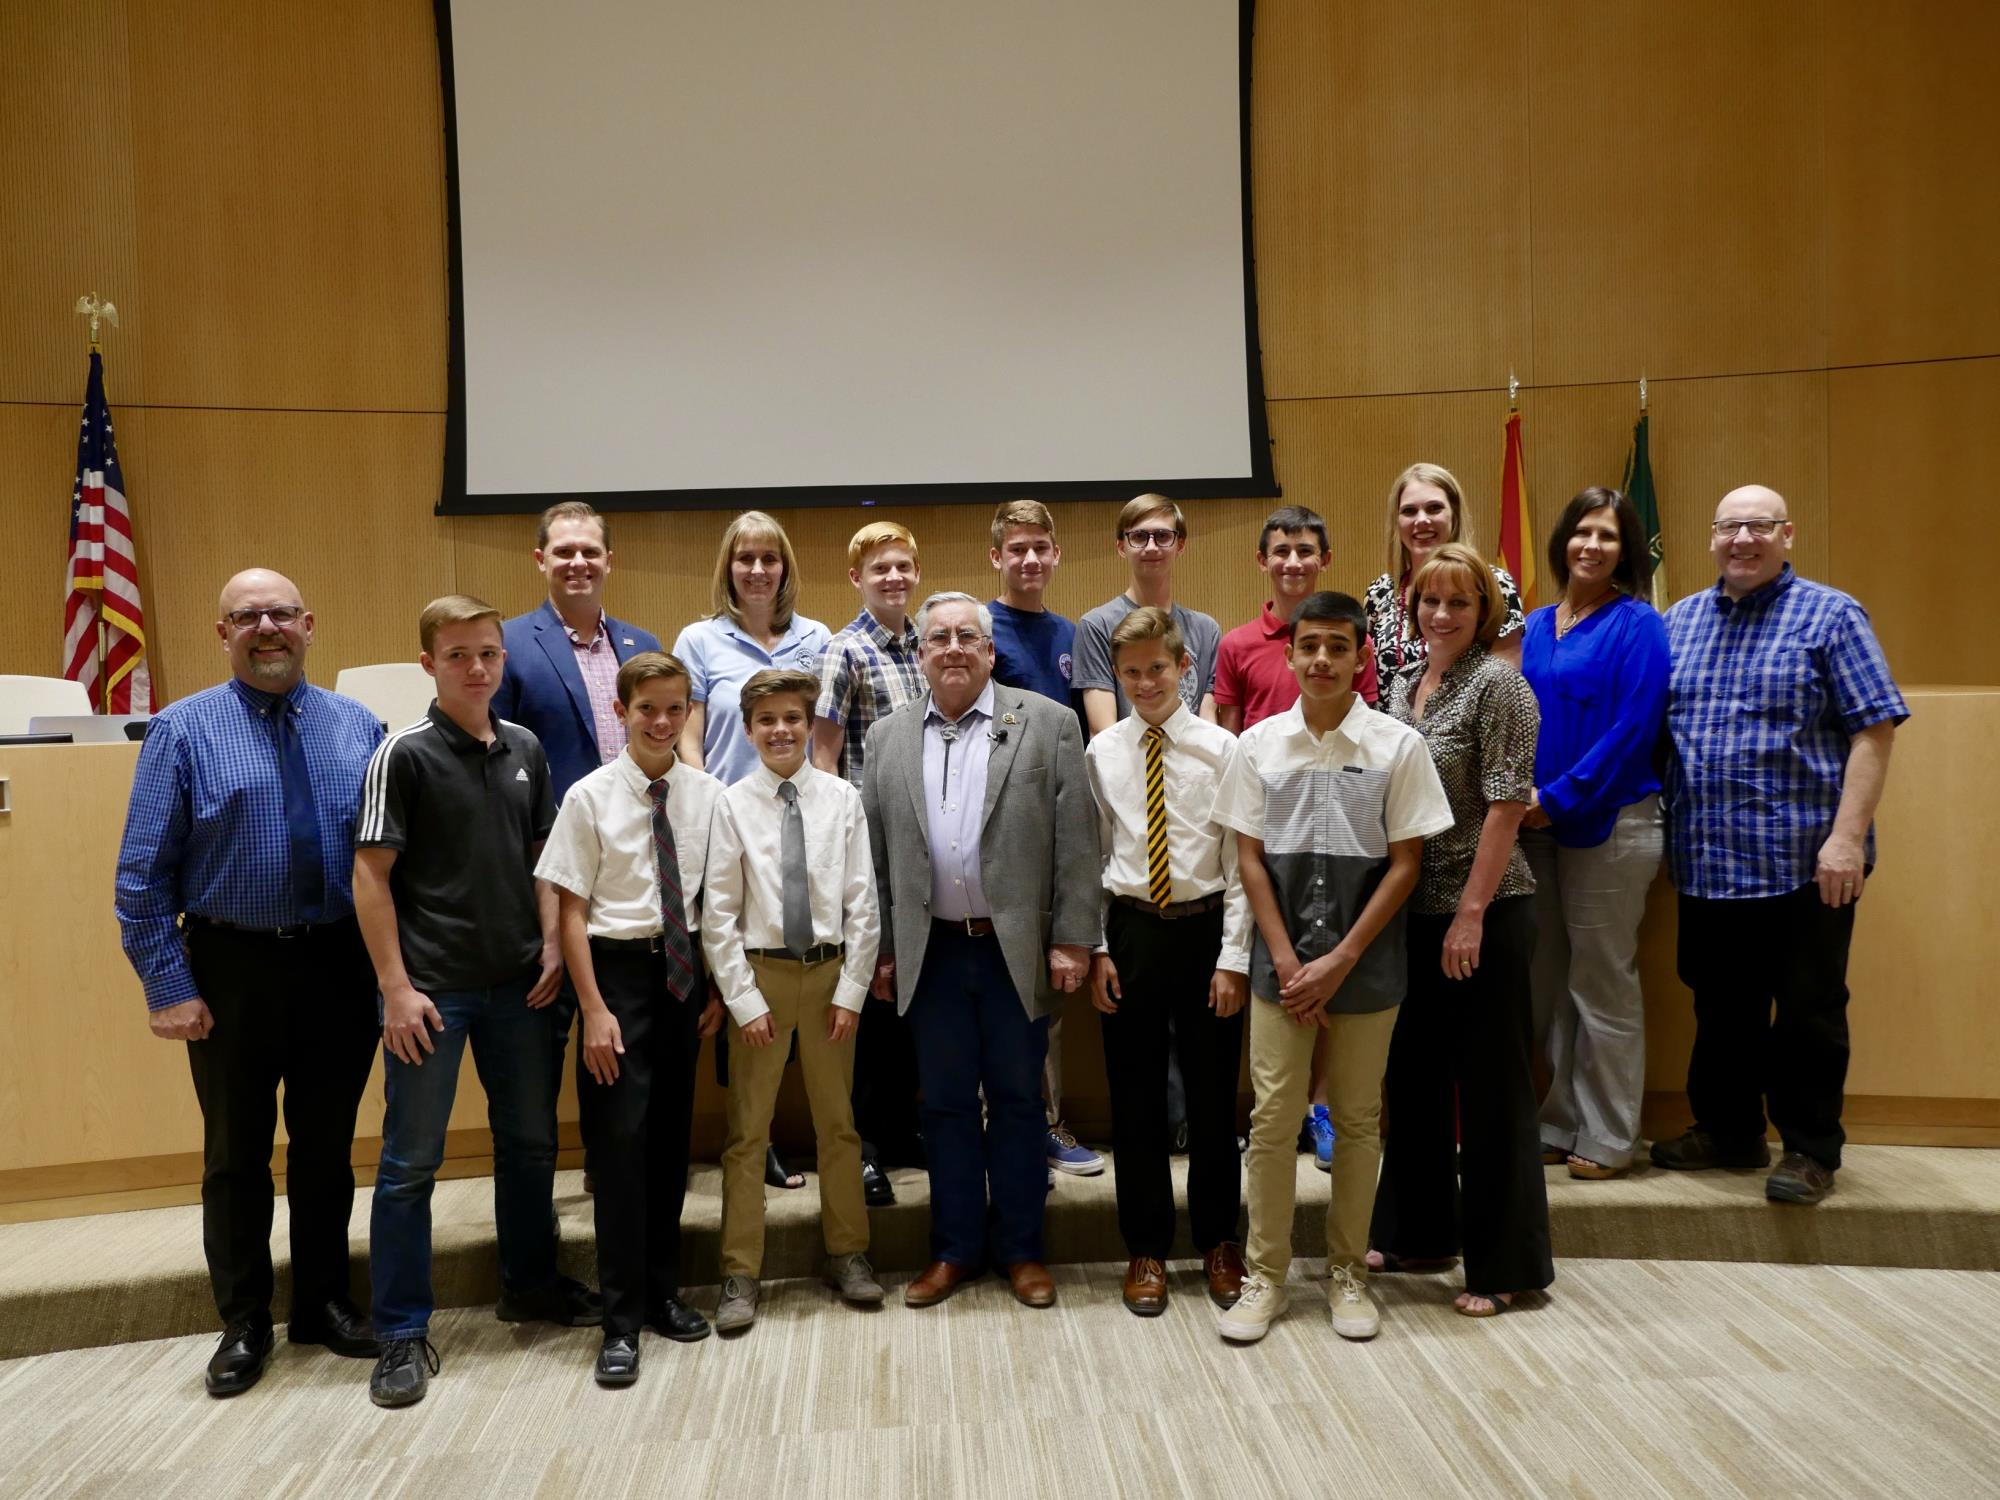 Mayor Barney and the Town Council with the Heritage Academy State Champion Men's Track Team at the May 16 Town Council Meeting